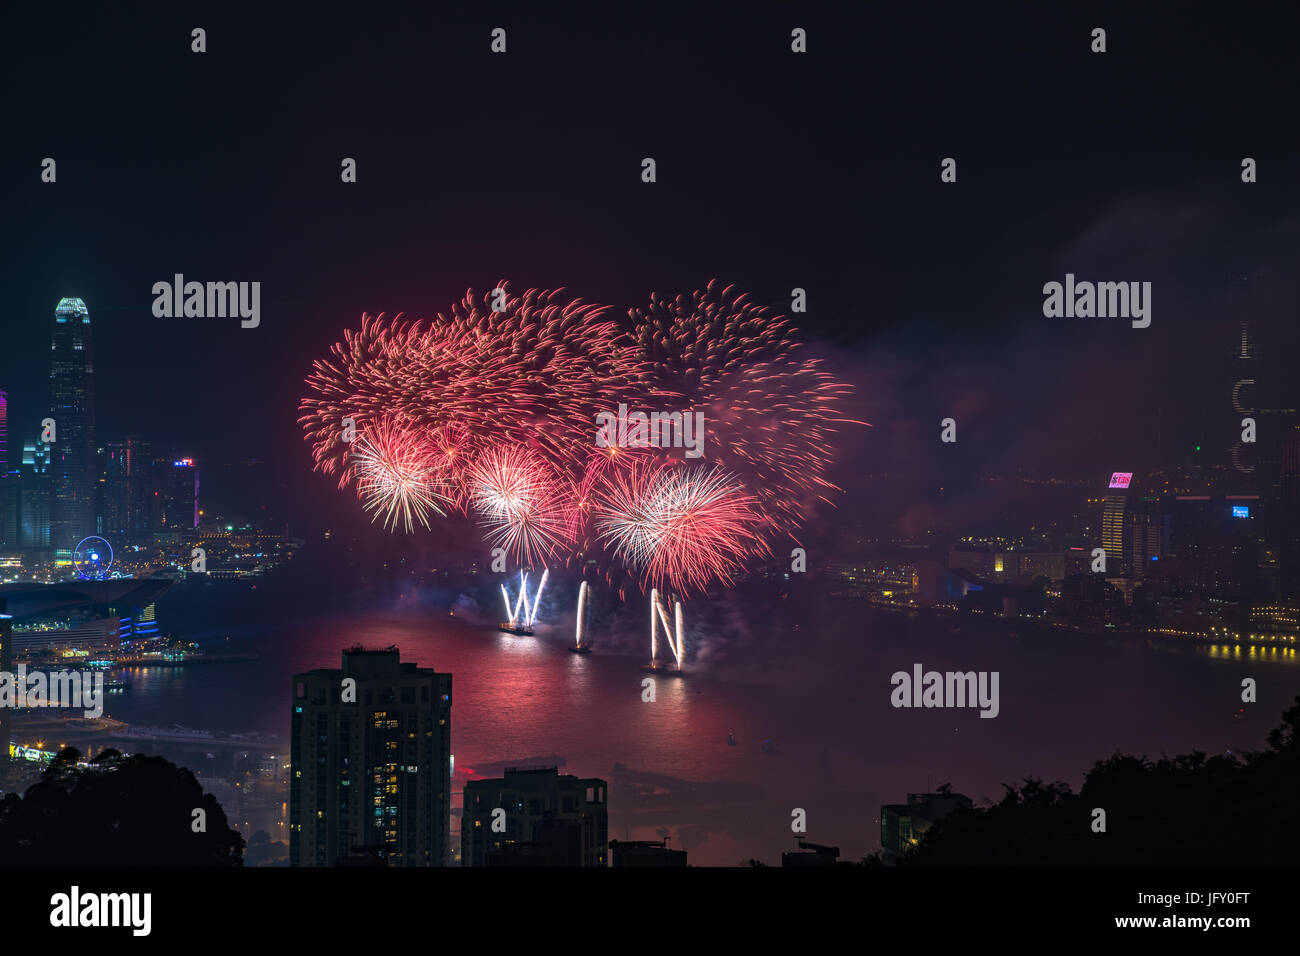 Fireworks at Victoria Harbour, Hong Kong. Commemorating 20th anniversary of Hong Kong handover to China. Credit: Stock Photo